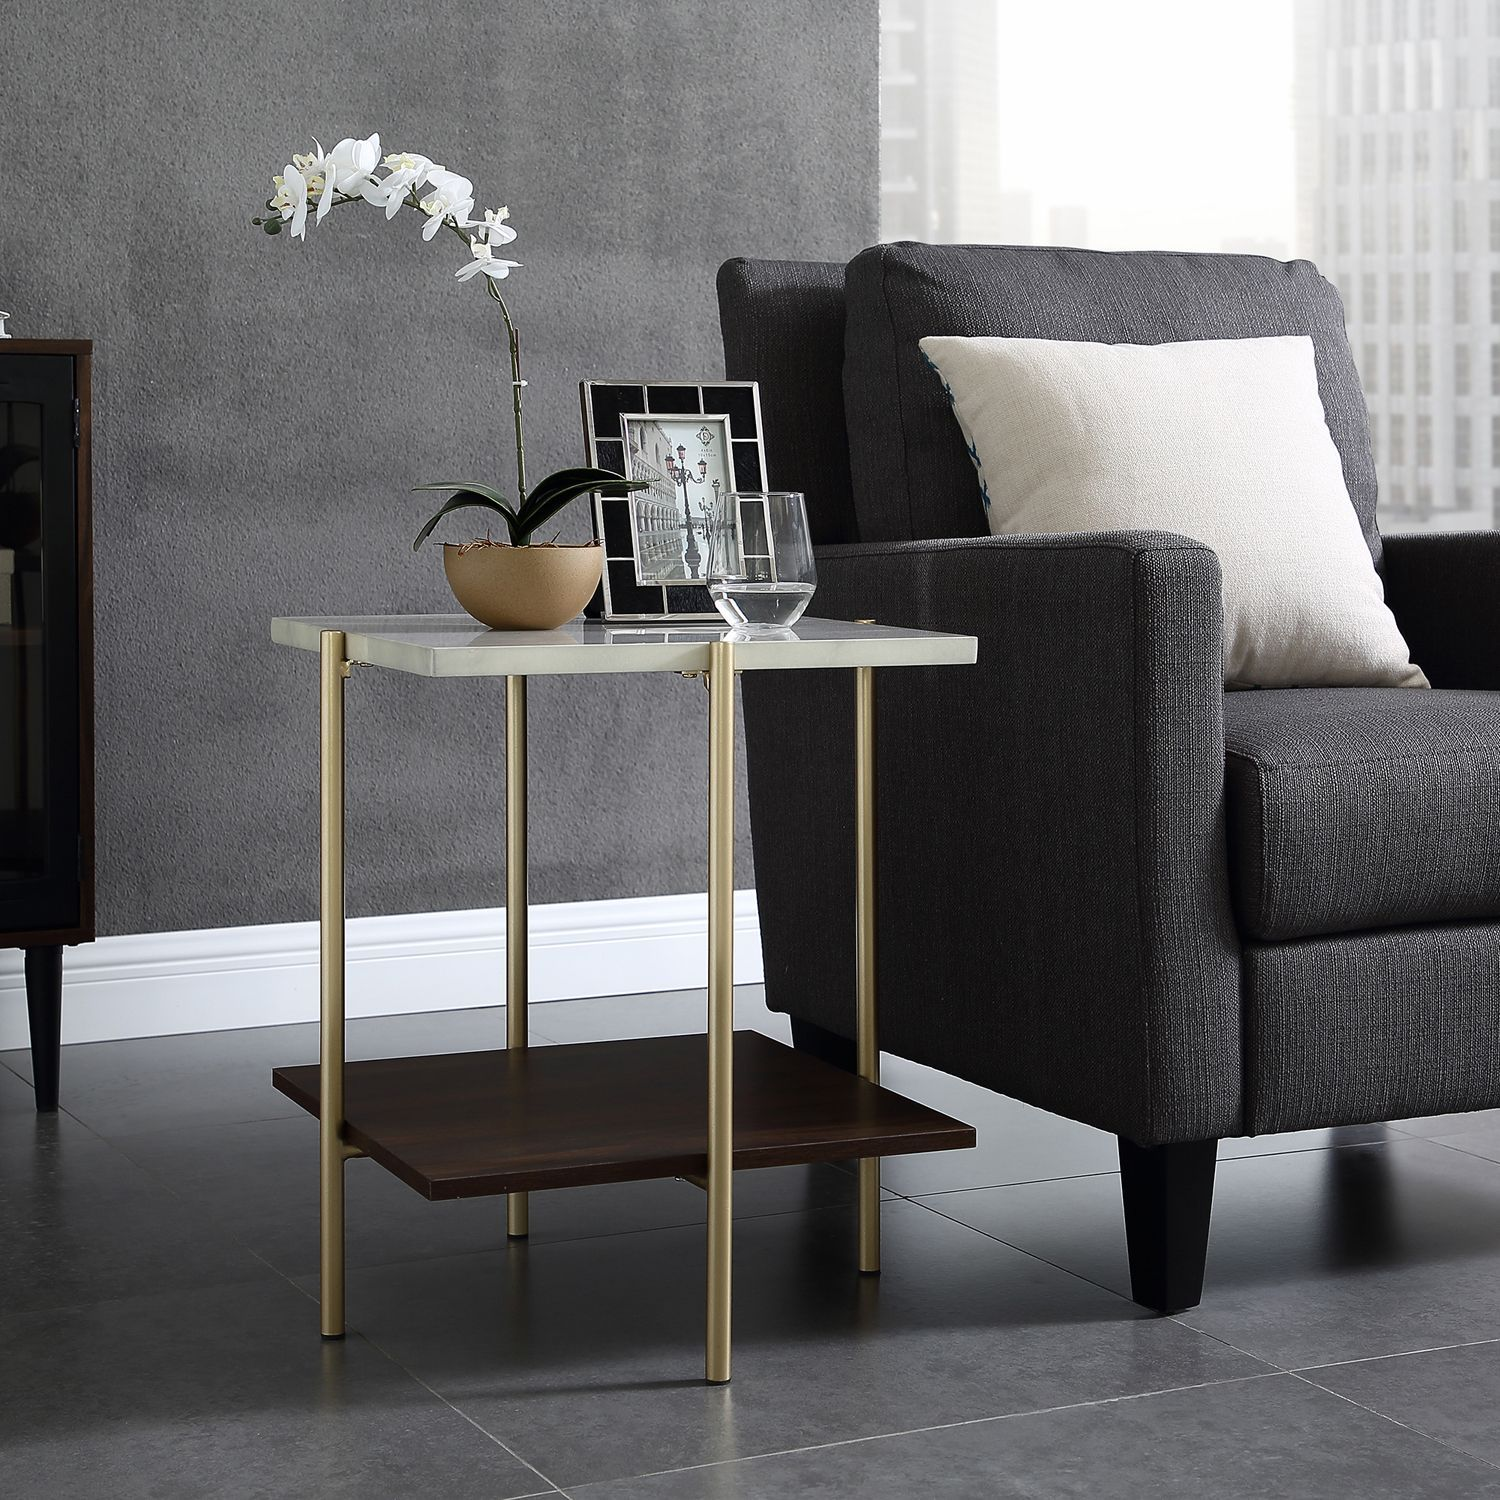 Square White Faux Marble Gold Side Table New Apt 2505